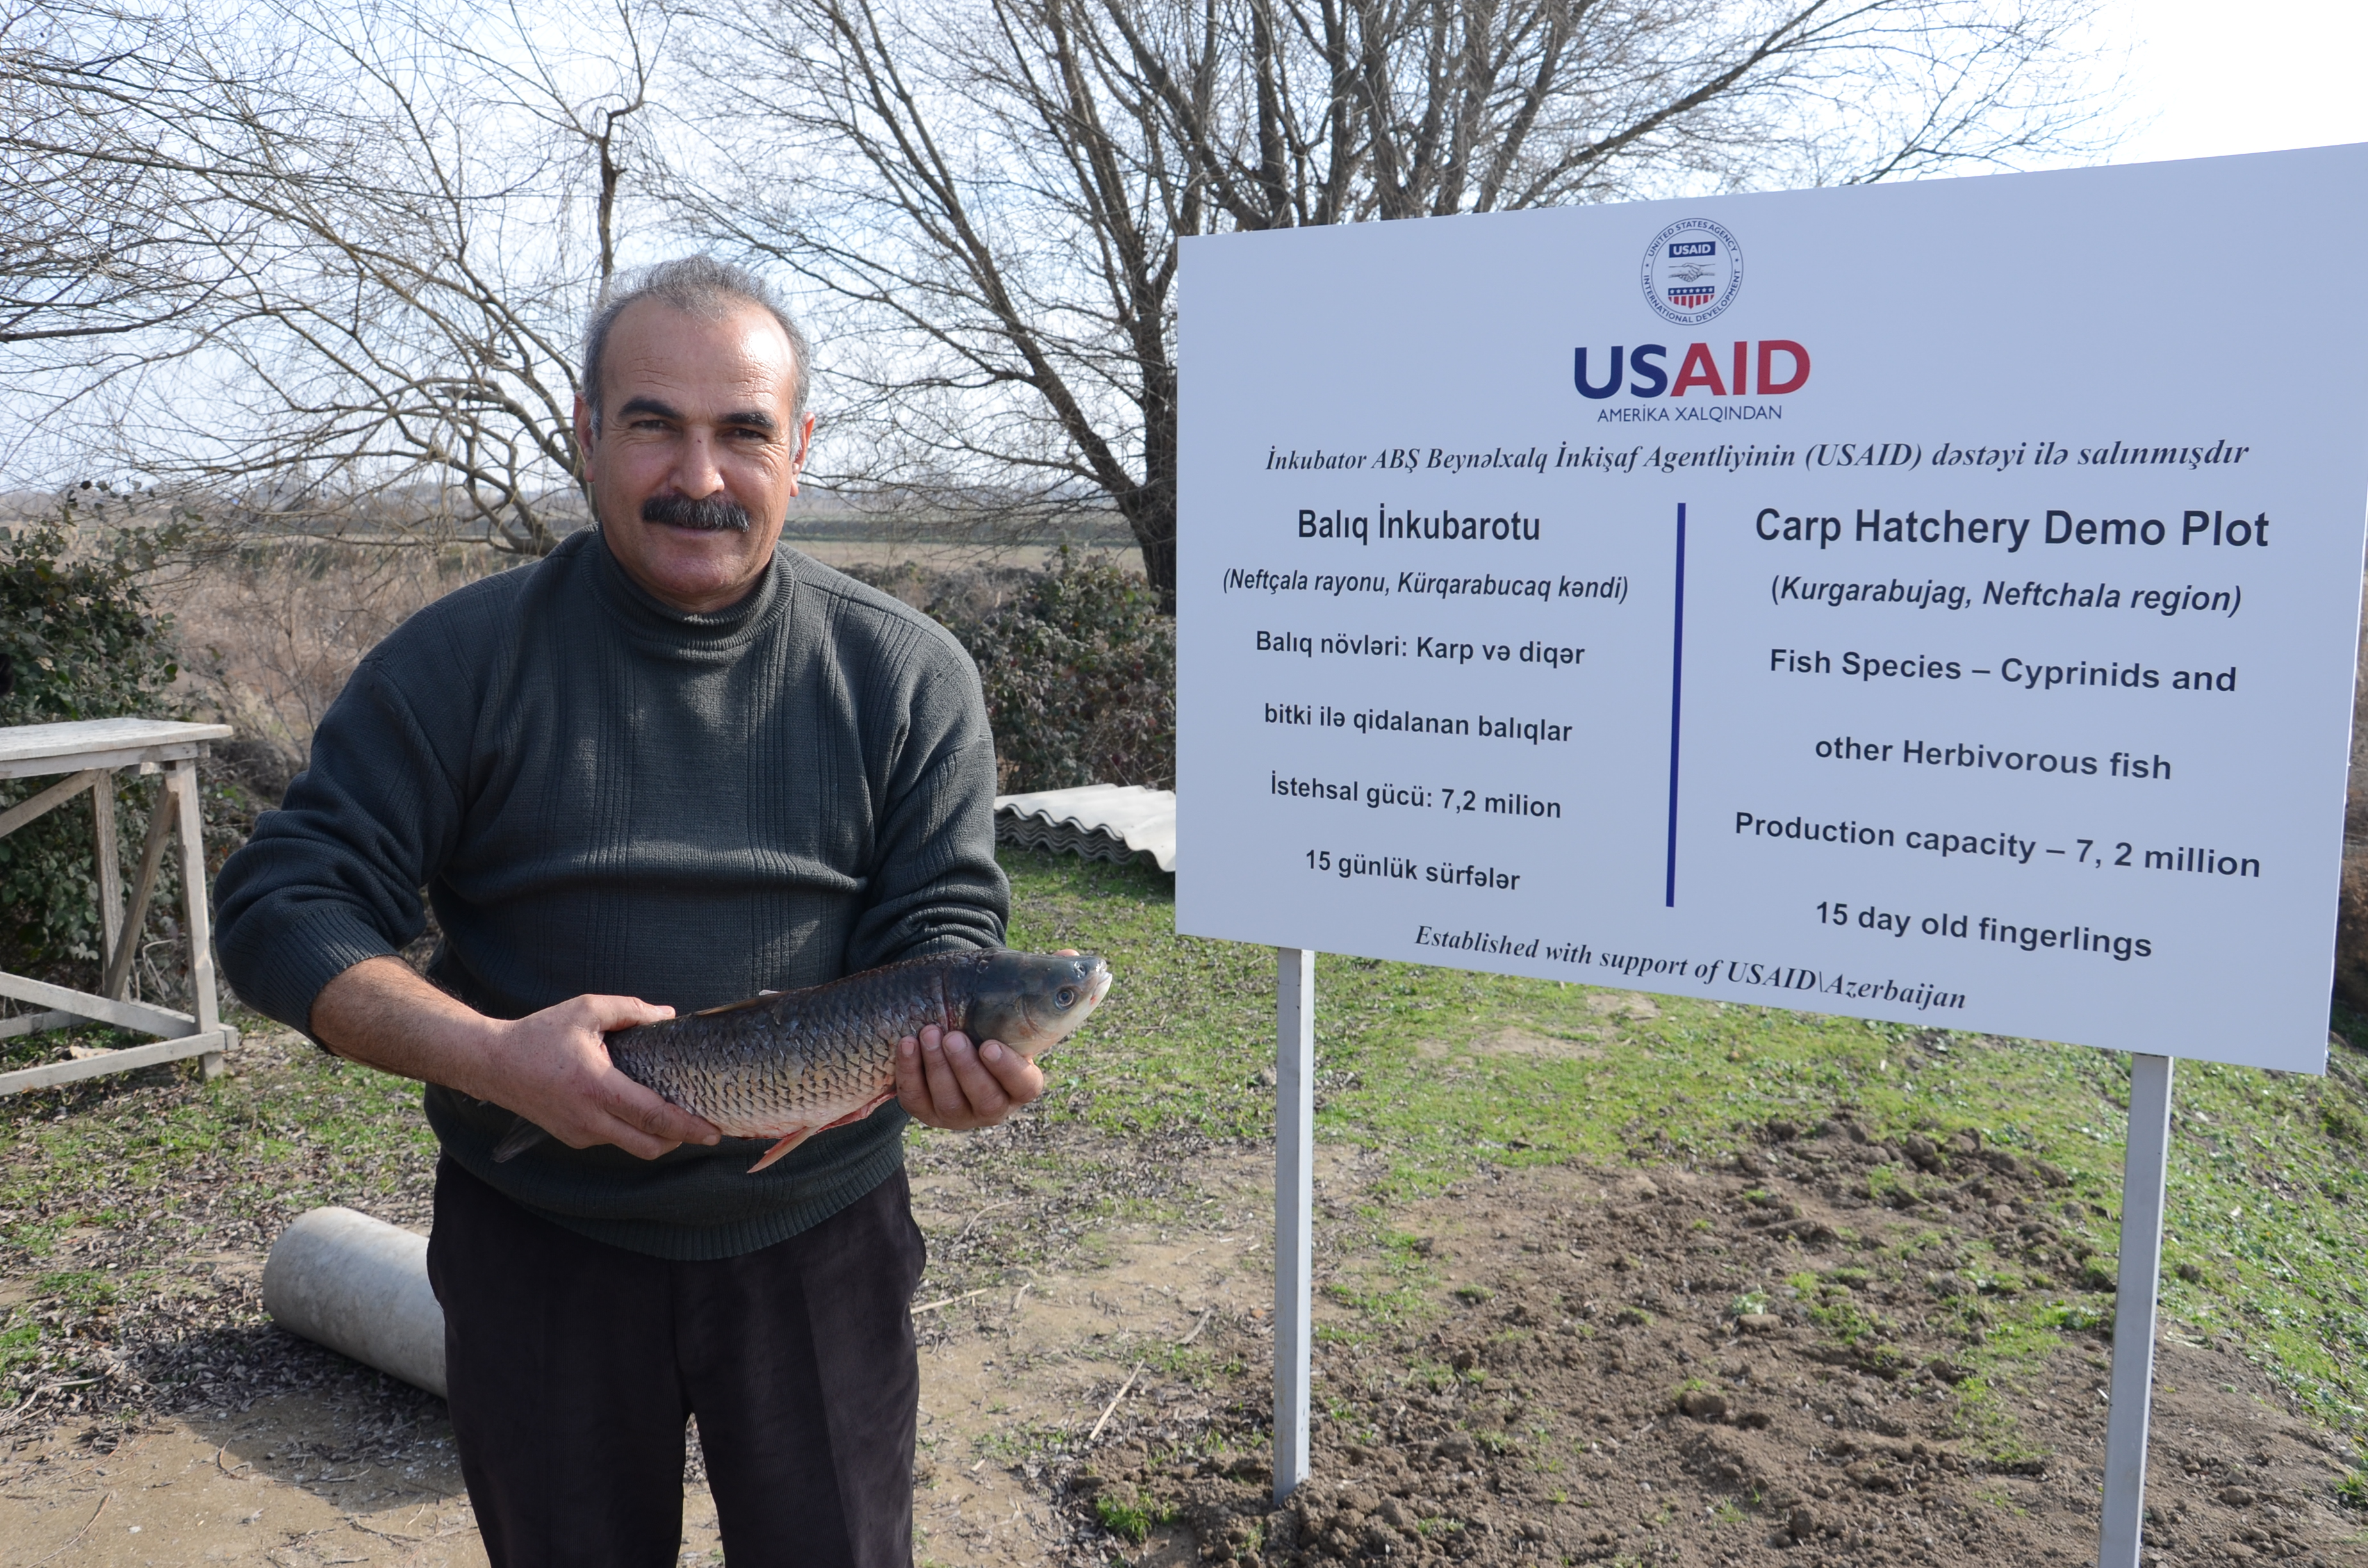 USAID helped Mr. Badalov reconstruct his carp hatchery.